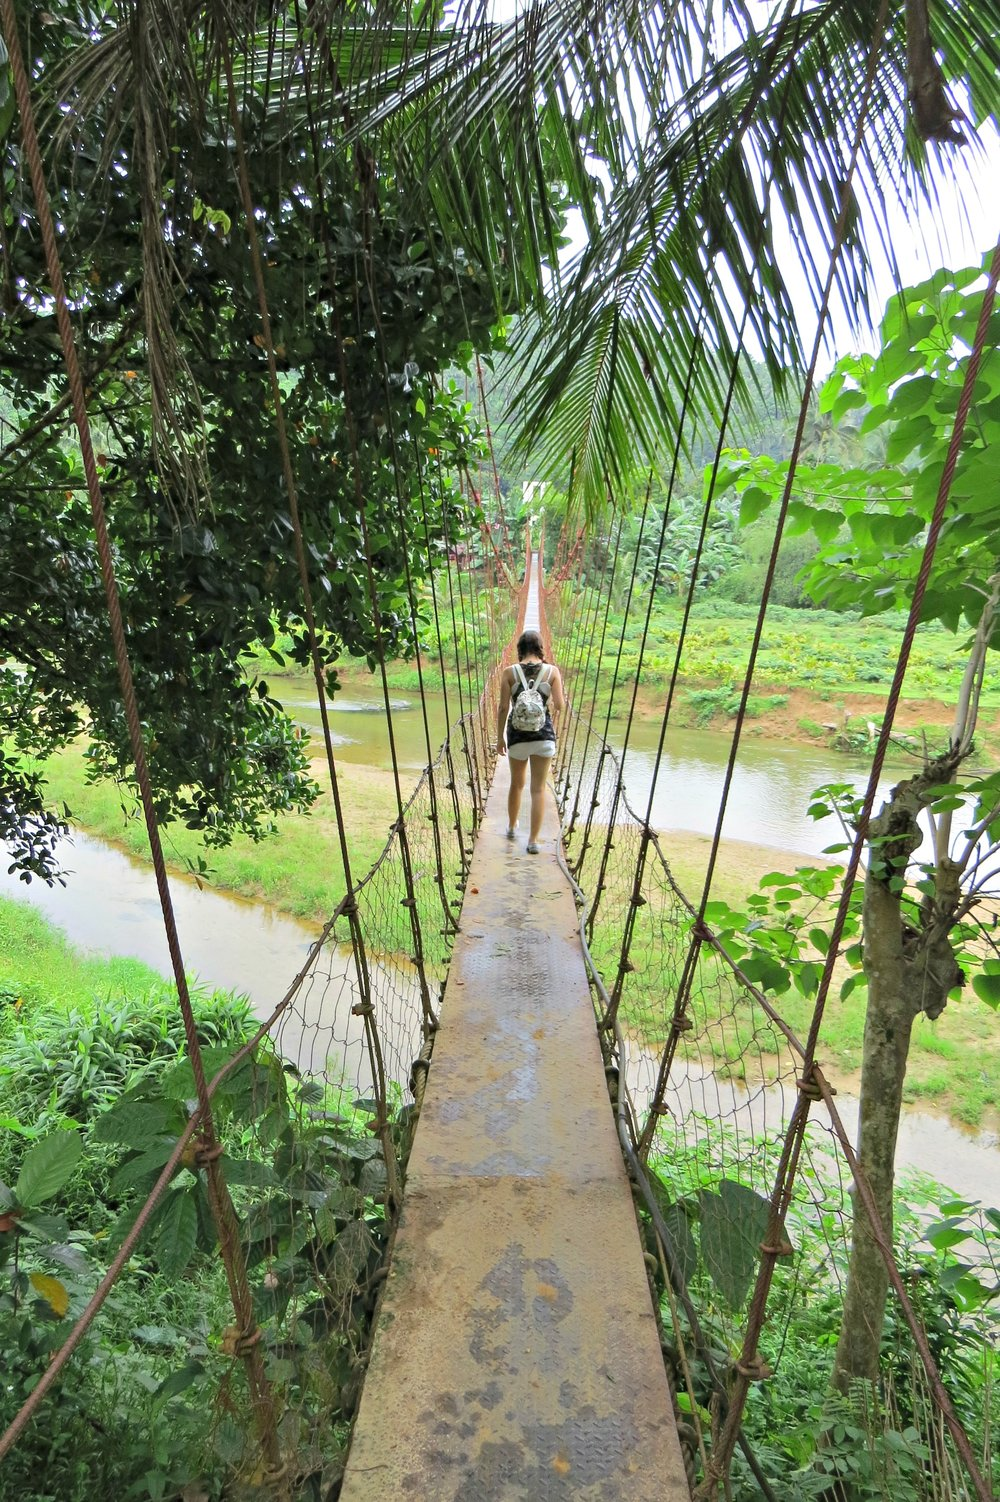 Calsara hanging Bridge